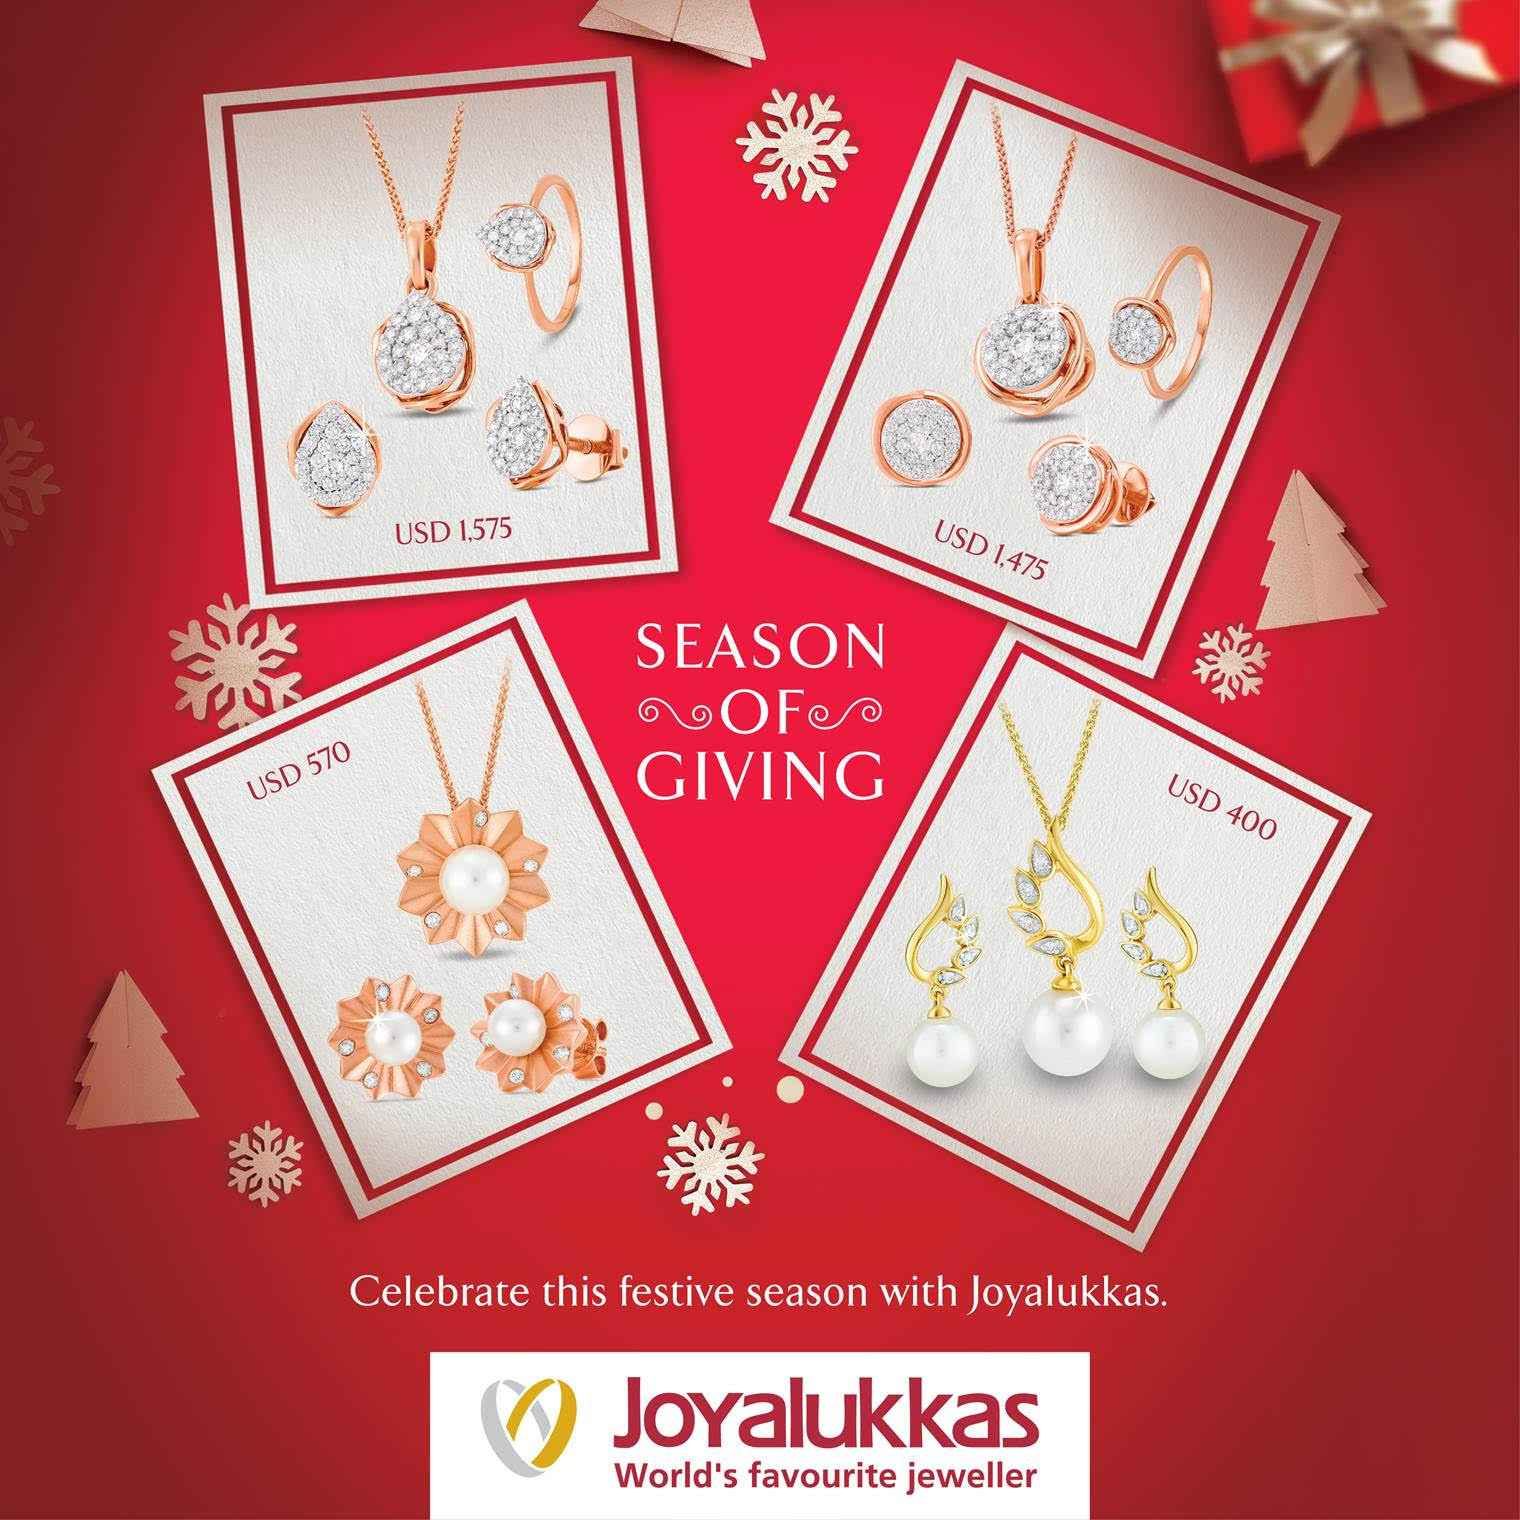 Season of Giving at Joyalukkas - Limited Special Now at Store!